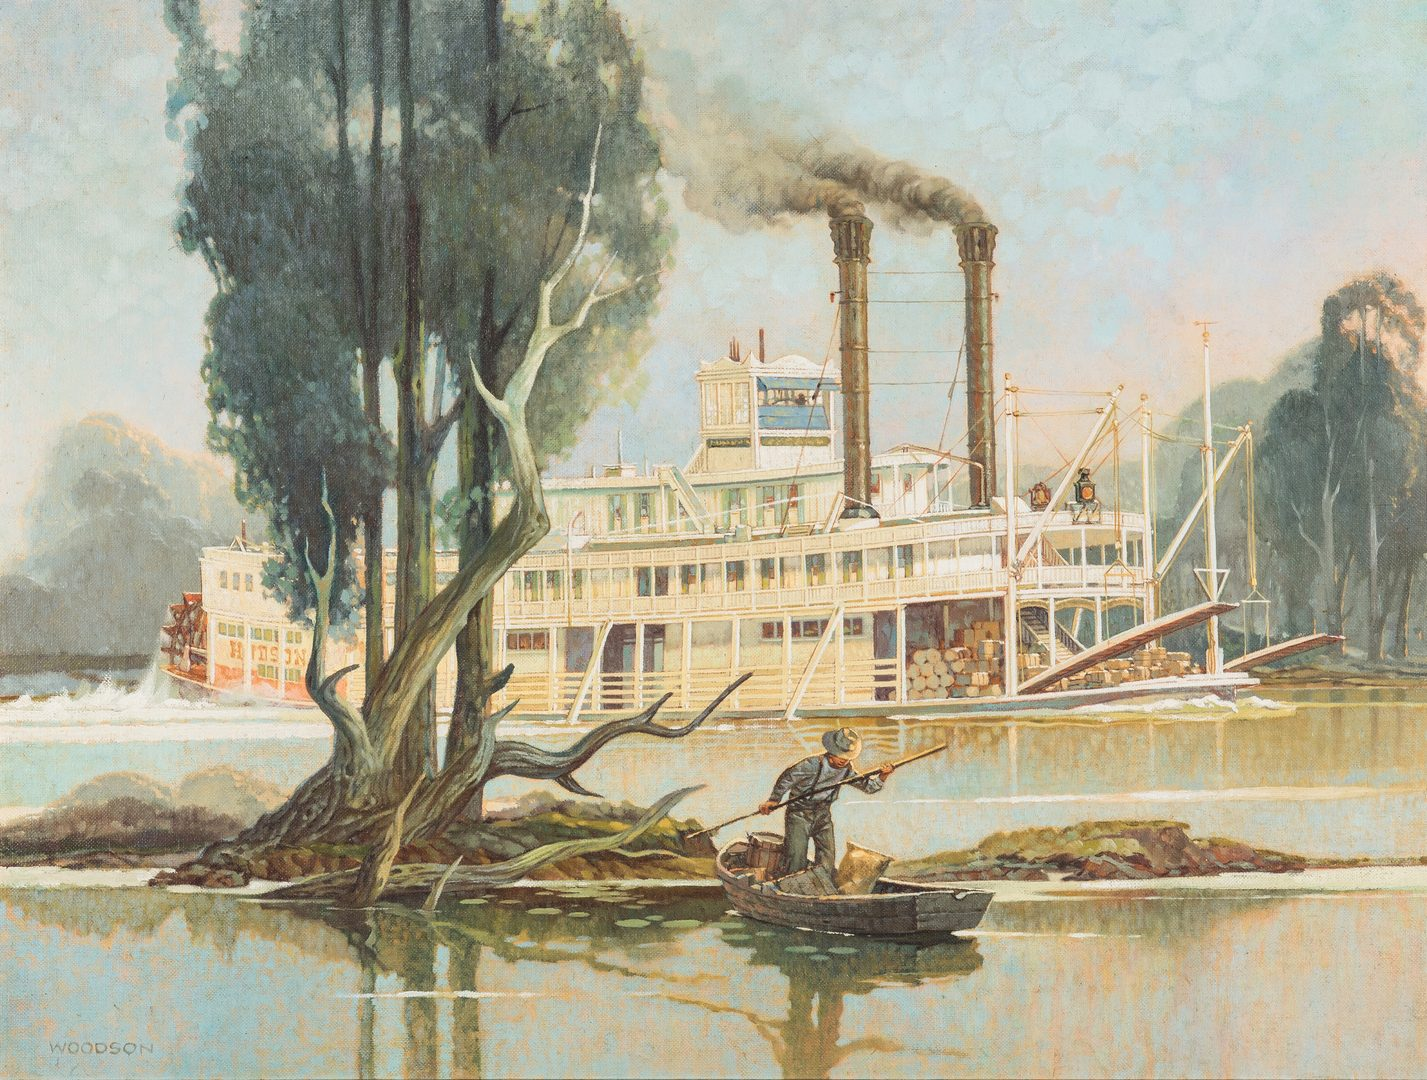 Lot 128: Jack Woodson Steamboat Oil Painting